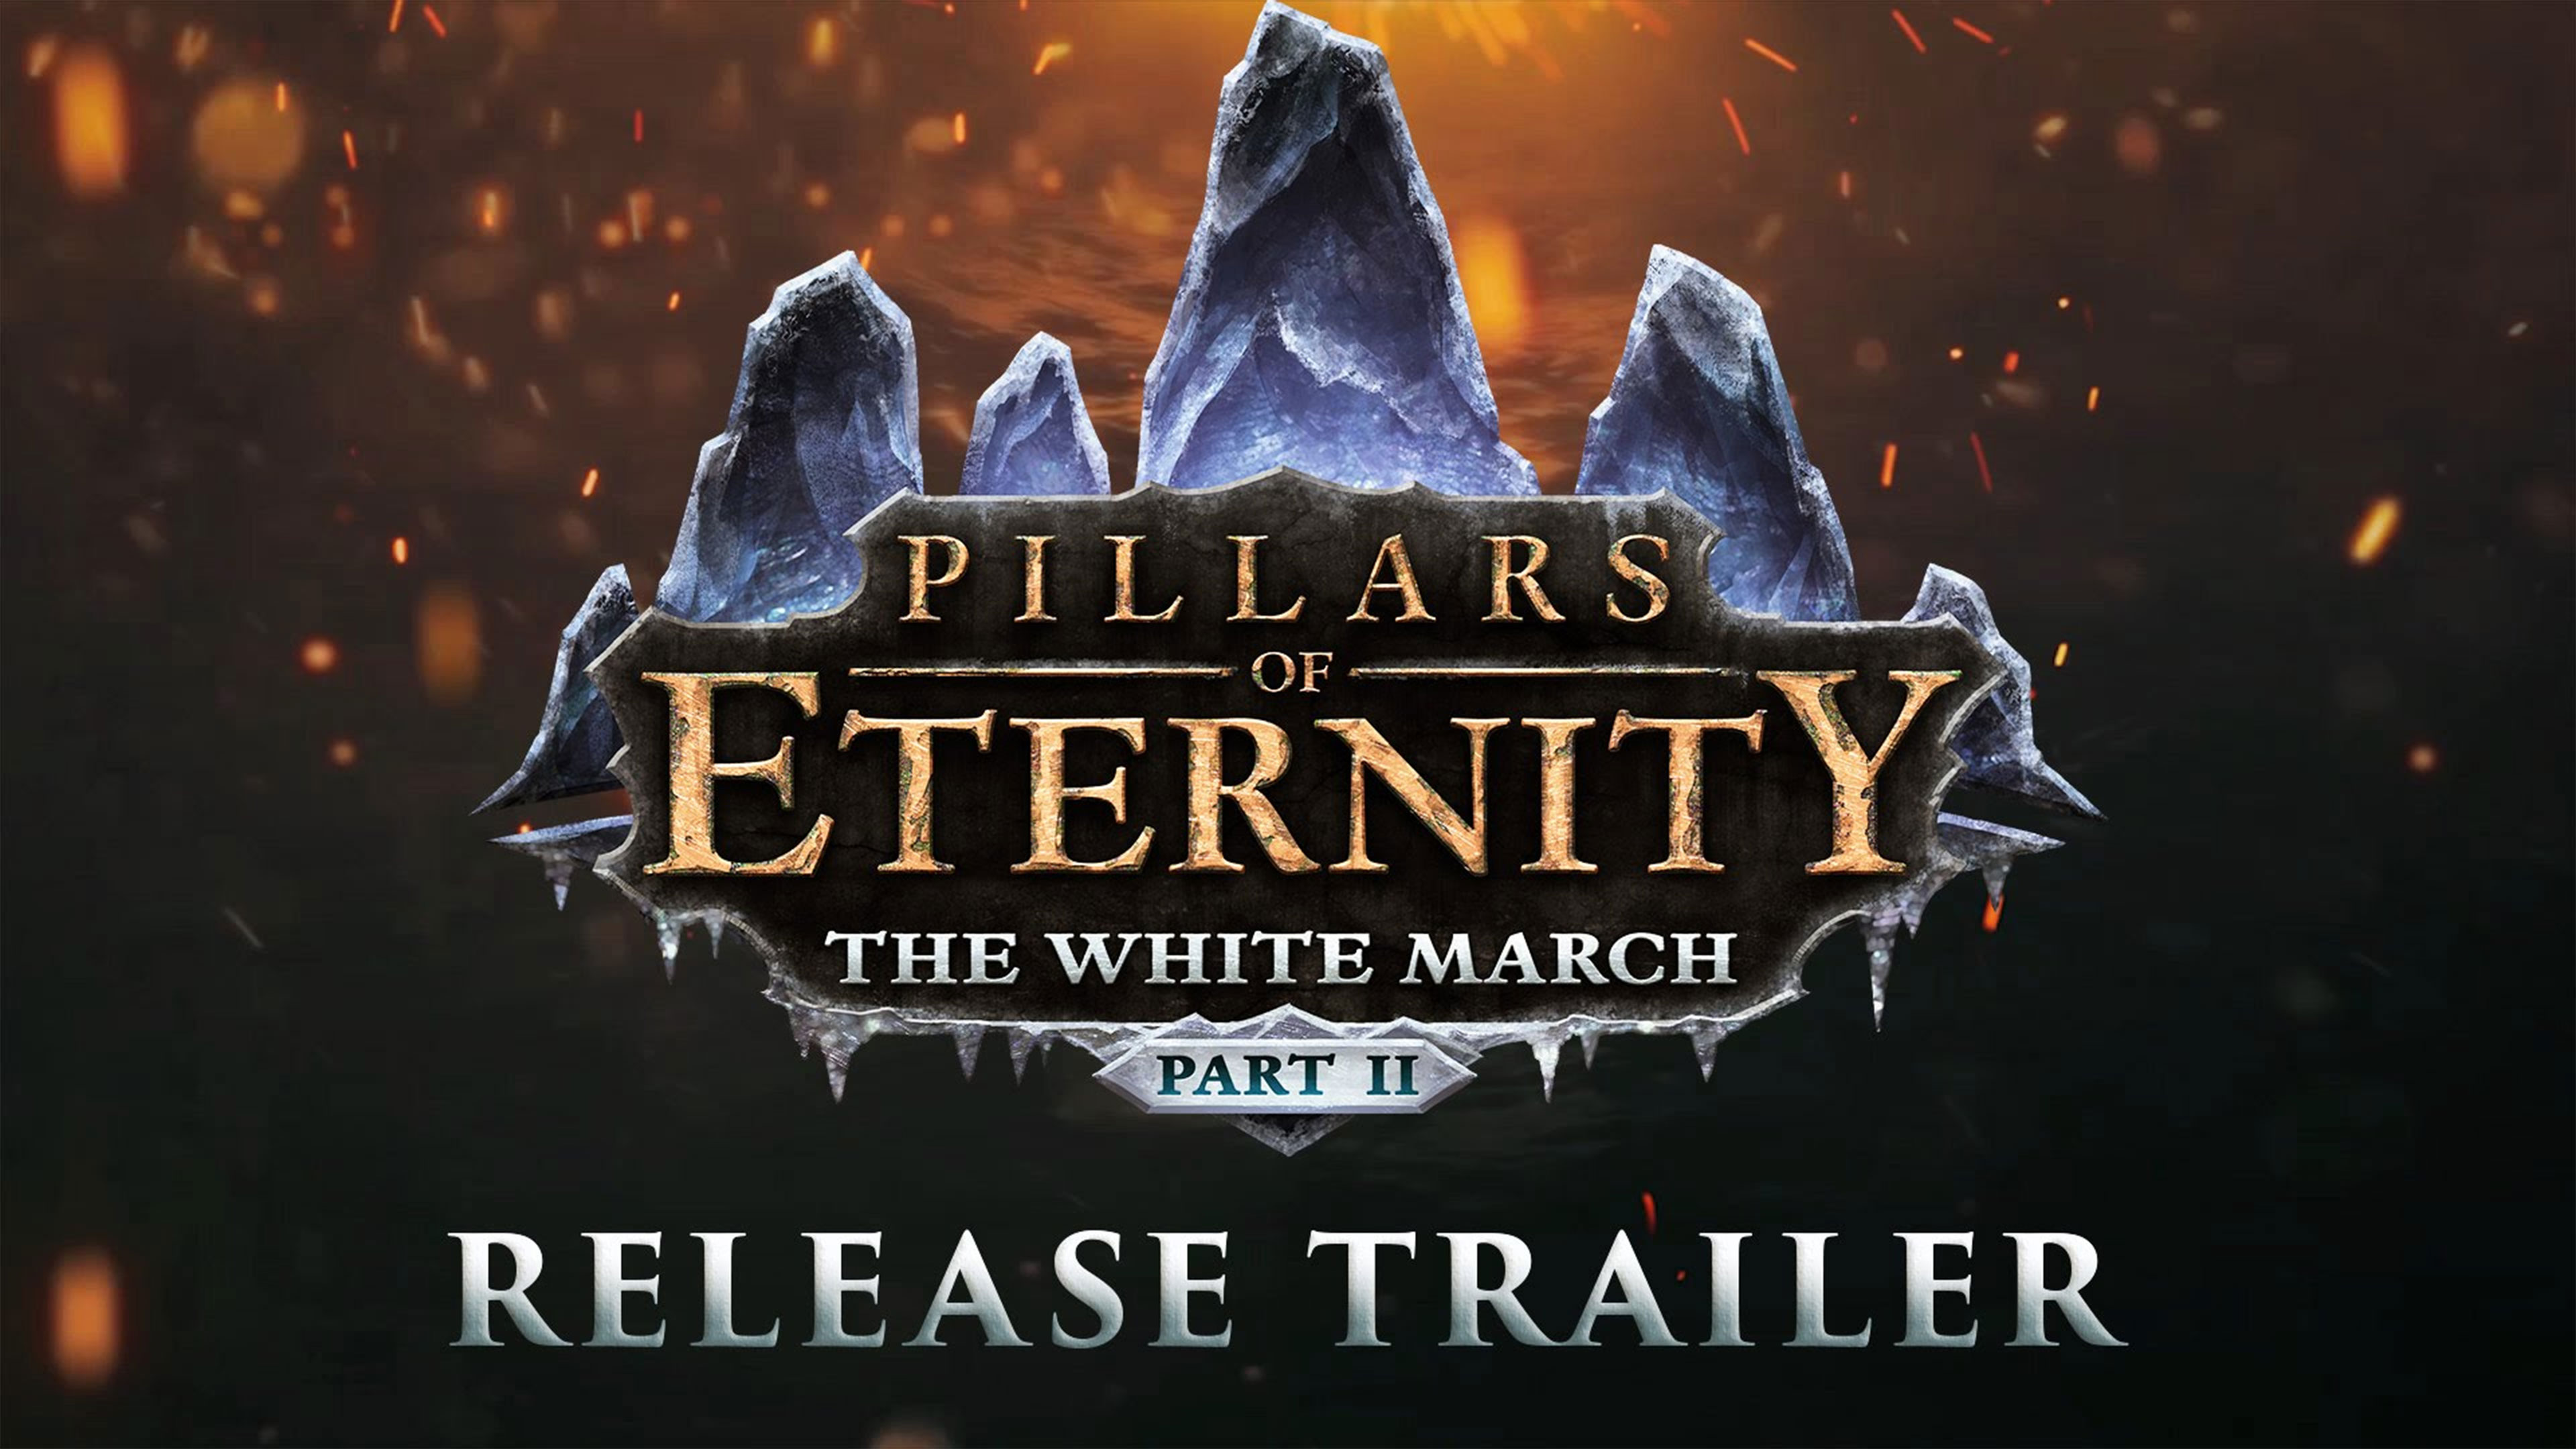 Pillars Of Eternity The White March Part Ii Wallpapers In Ultra Hd